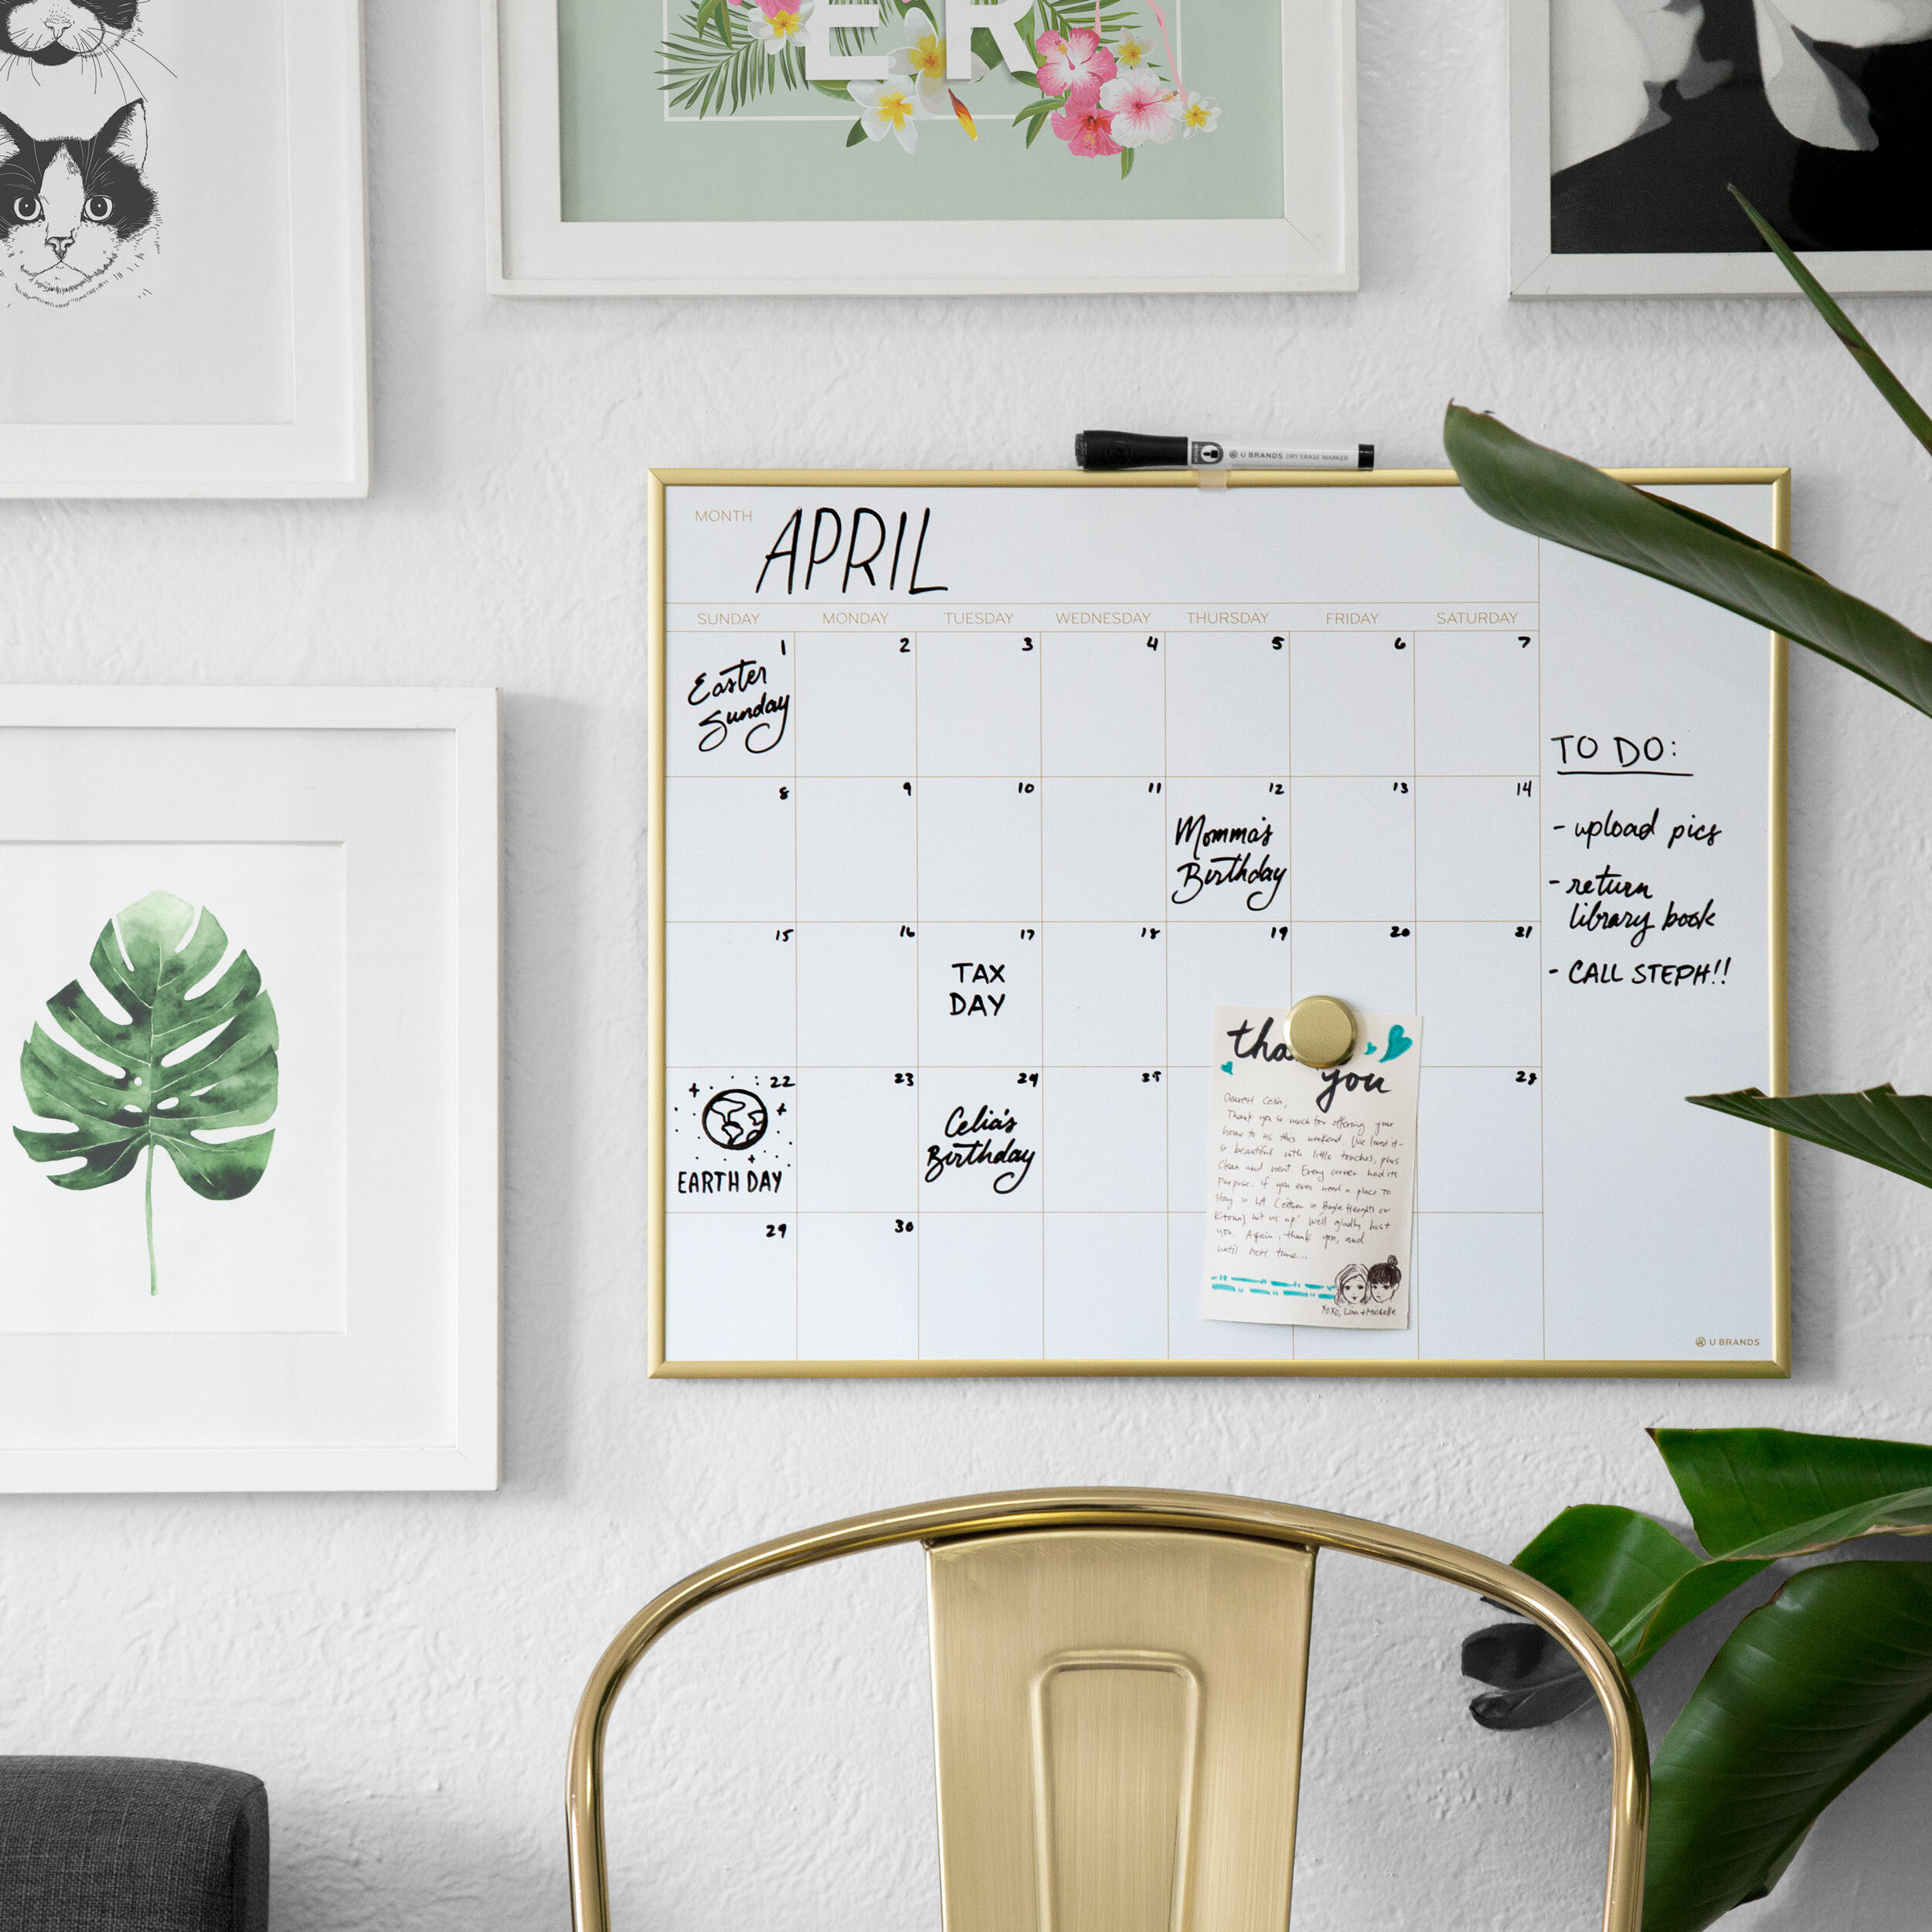 Symple Stuff Magnetic Calendar Planner Whiteboard 20 X 16 Reviews Wayfair